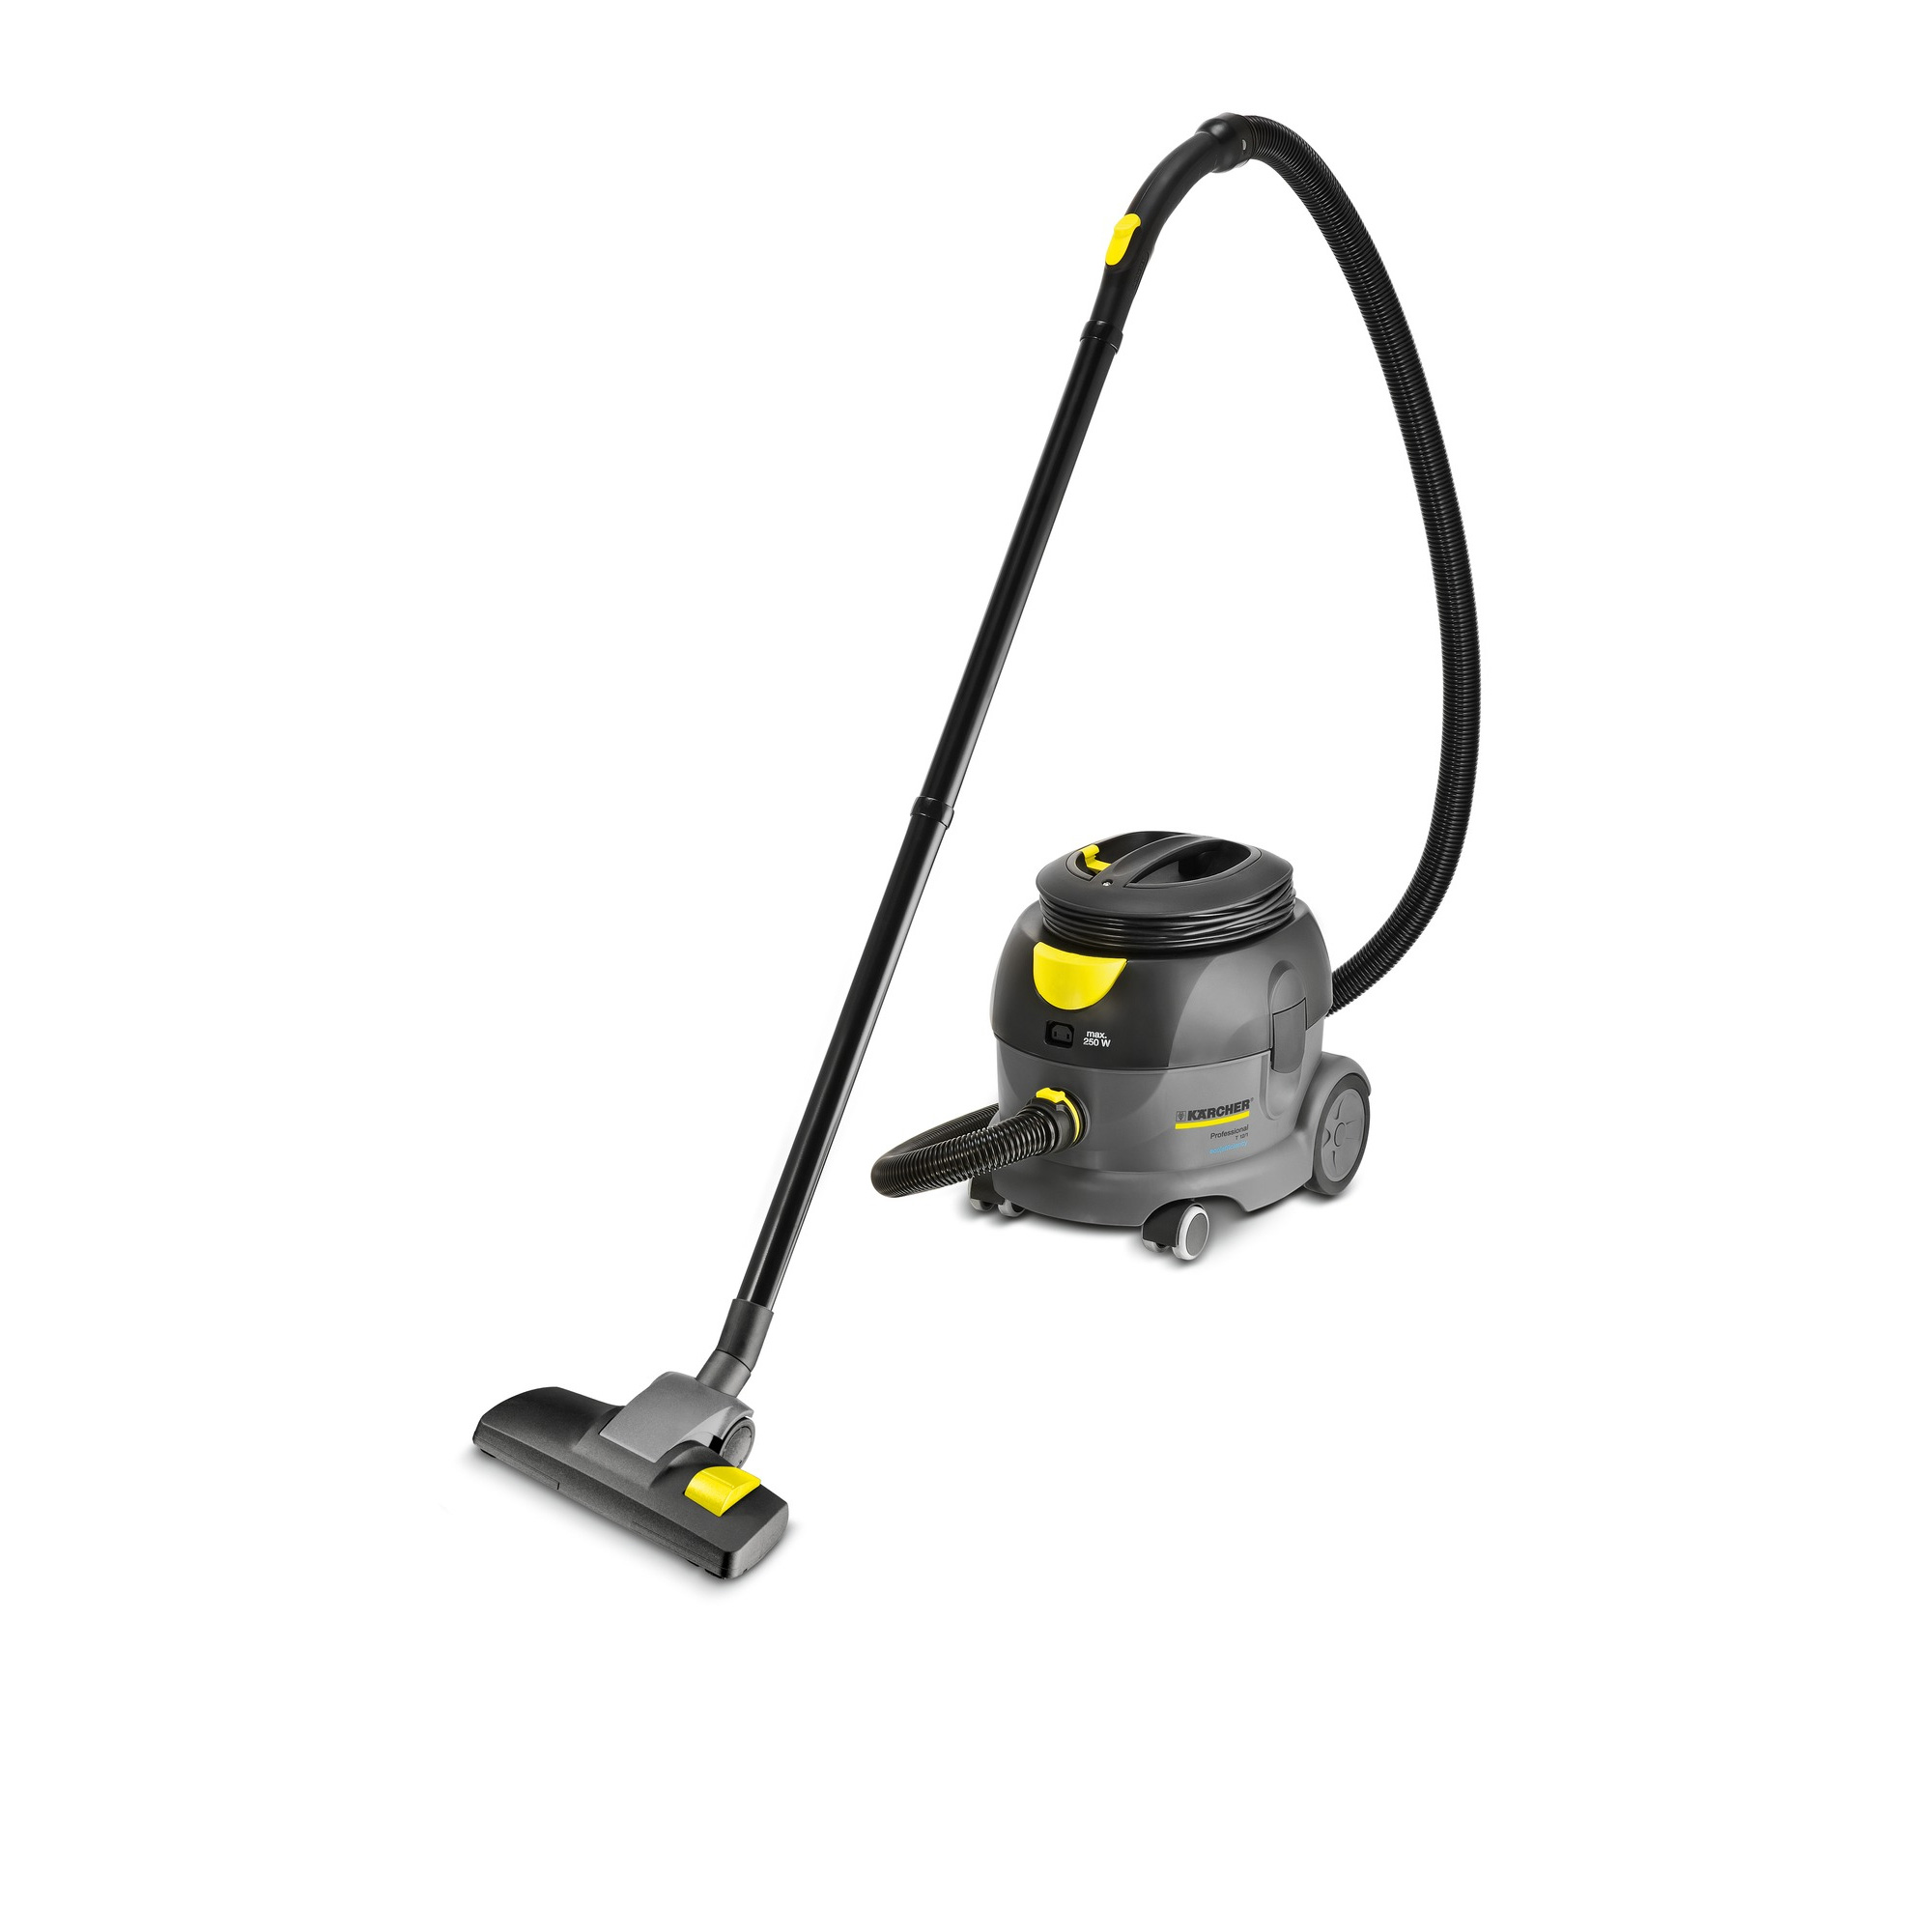 Karcher T 12/1 eco efficiency Dry Professional Vaccum Cleaner A Energy Rated